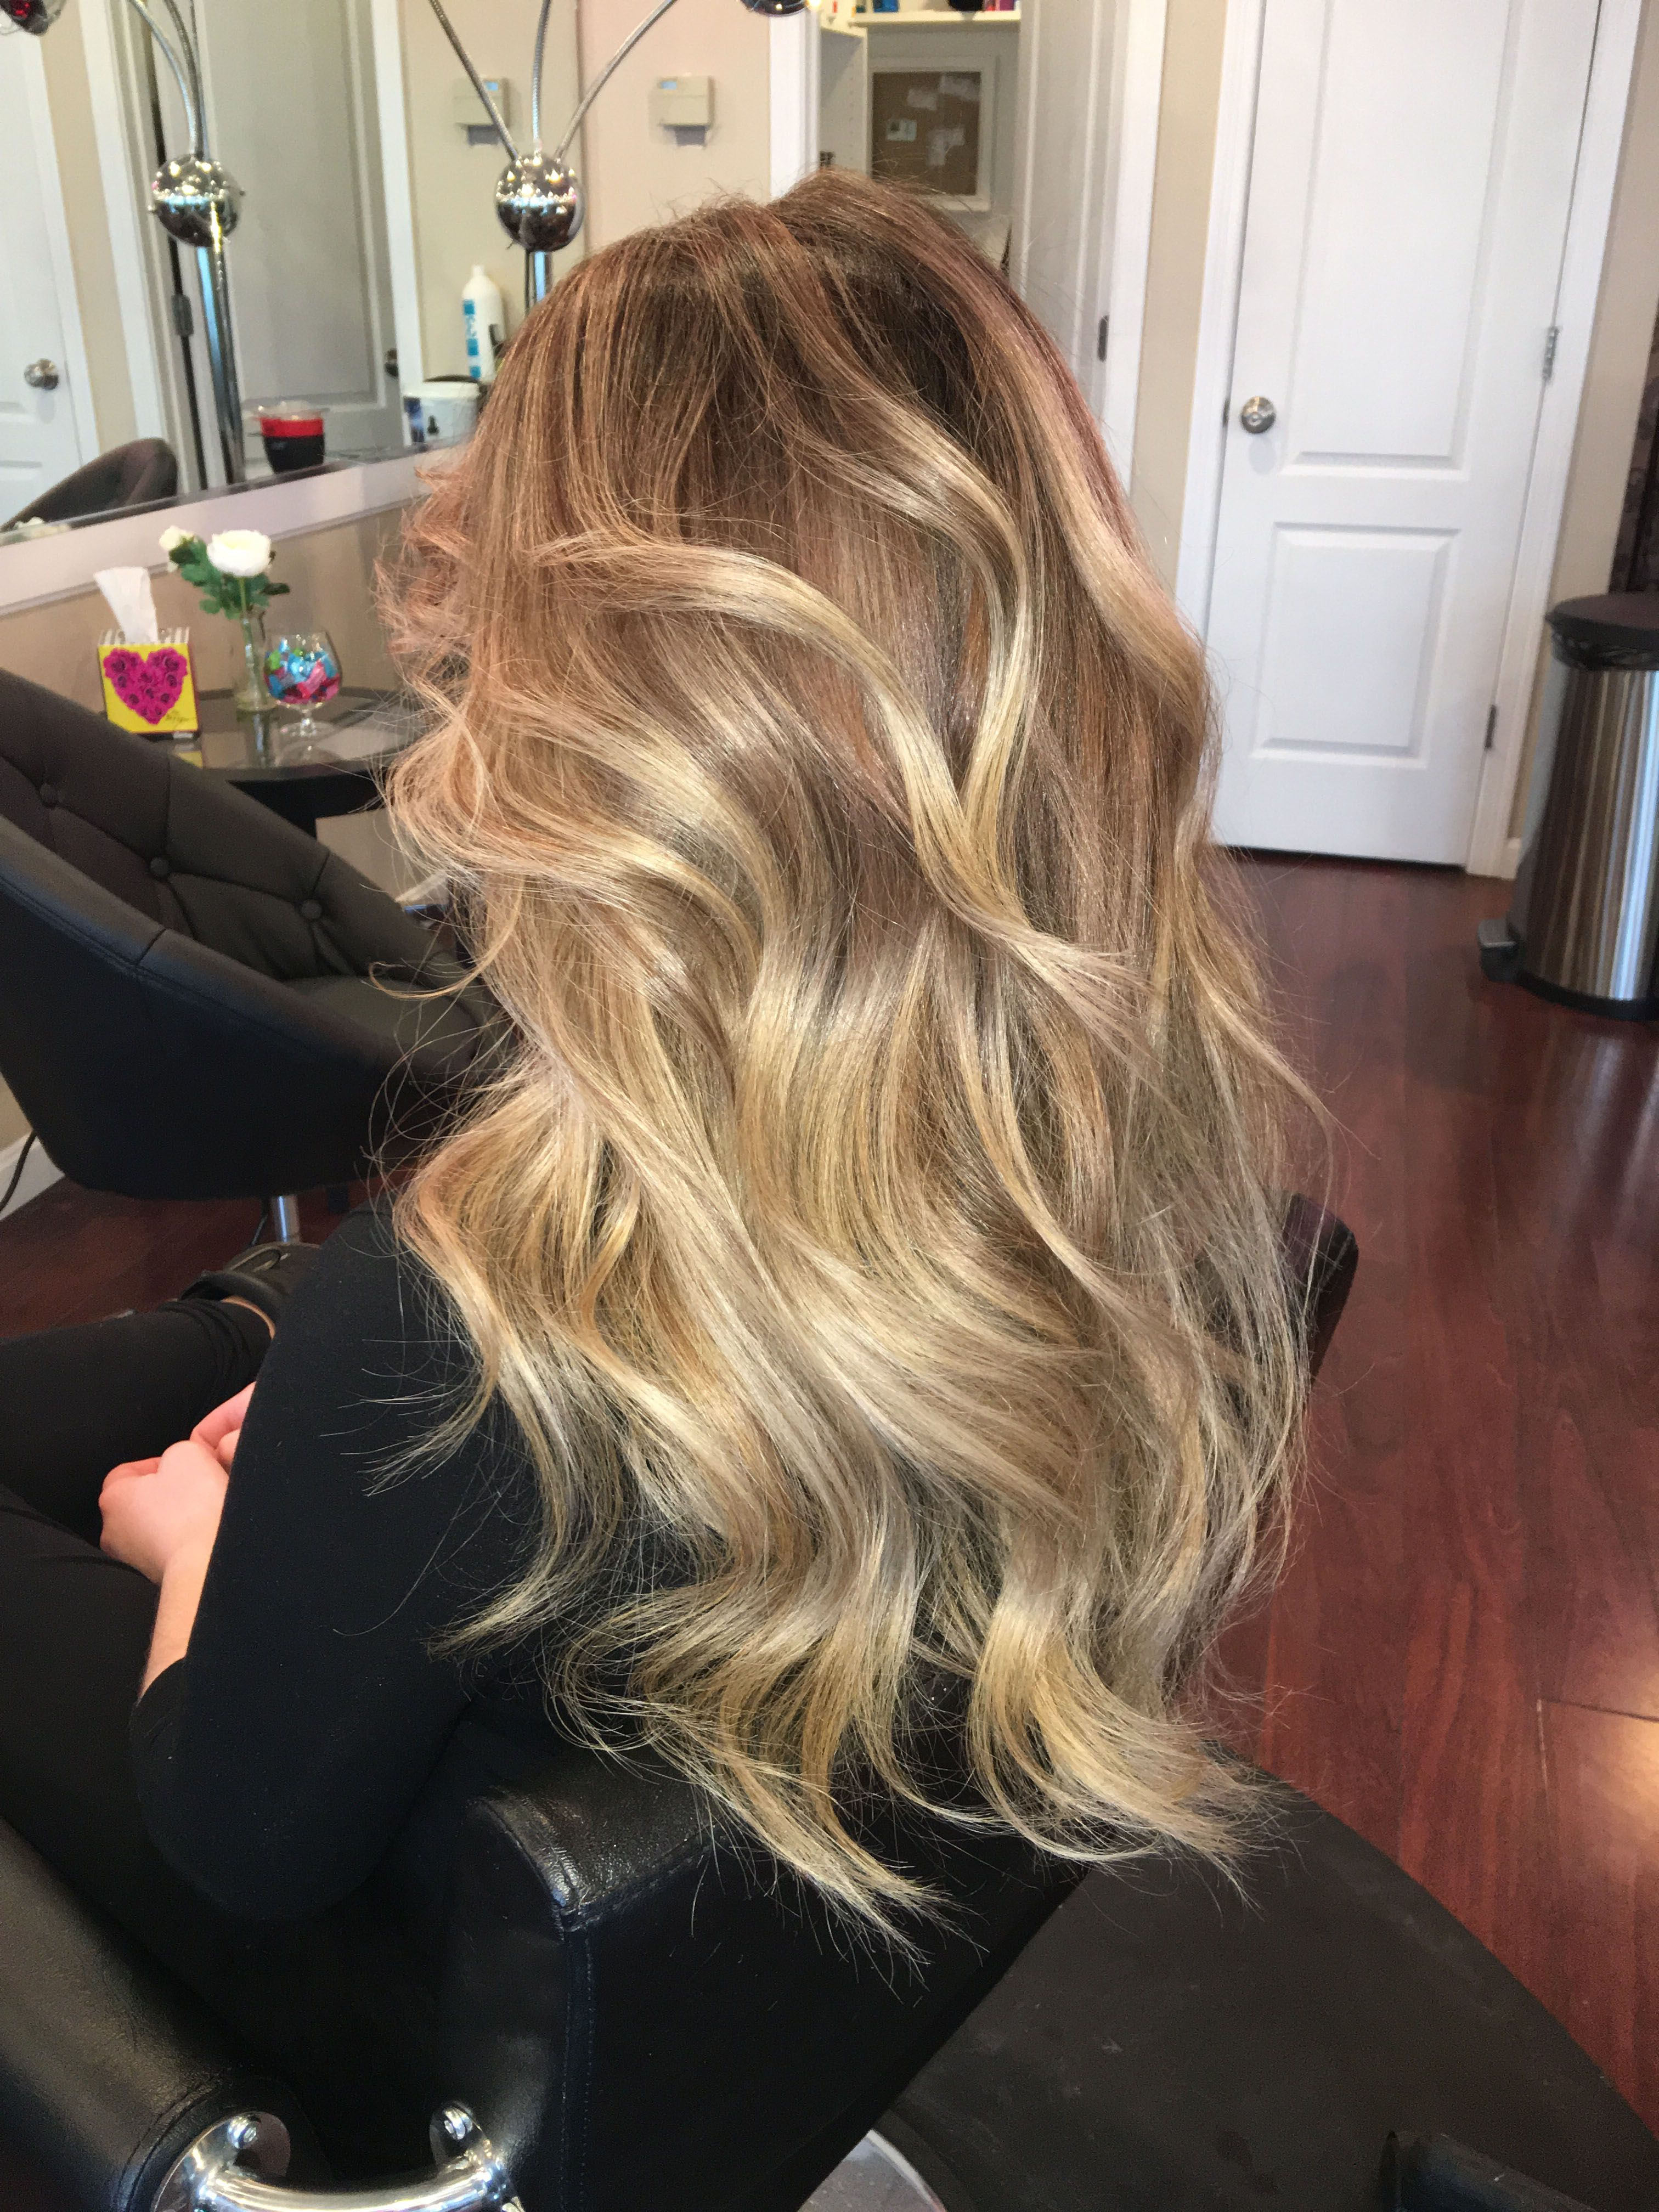 Formula Balayage And Toning For The Perfect Blonde Career